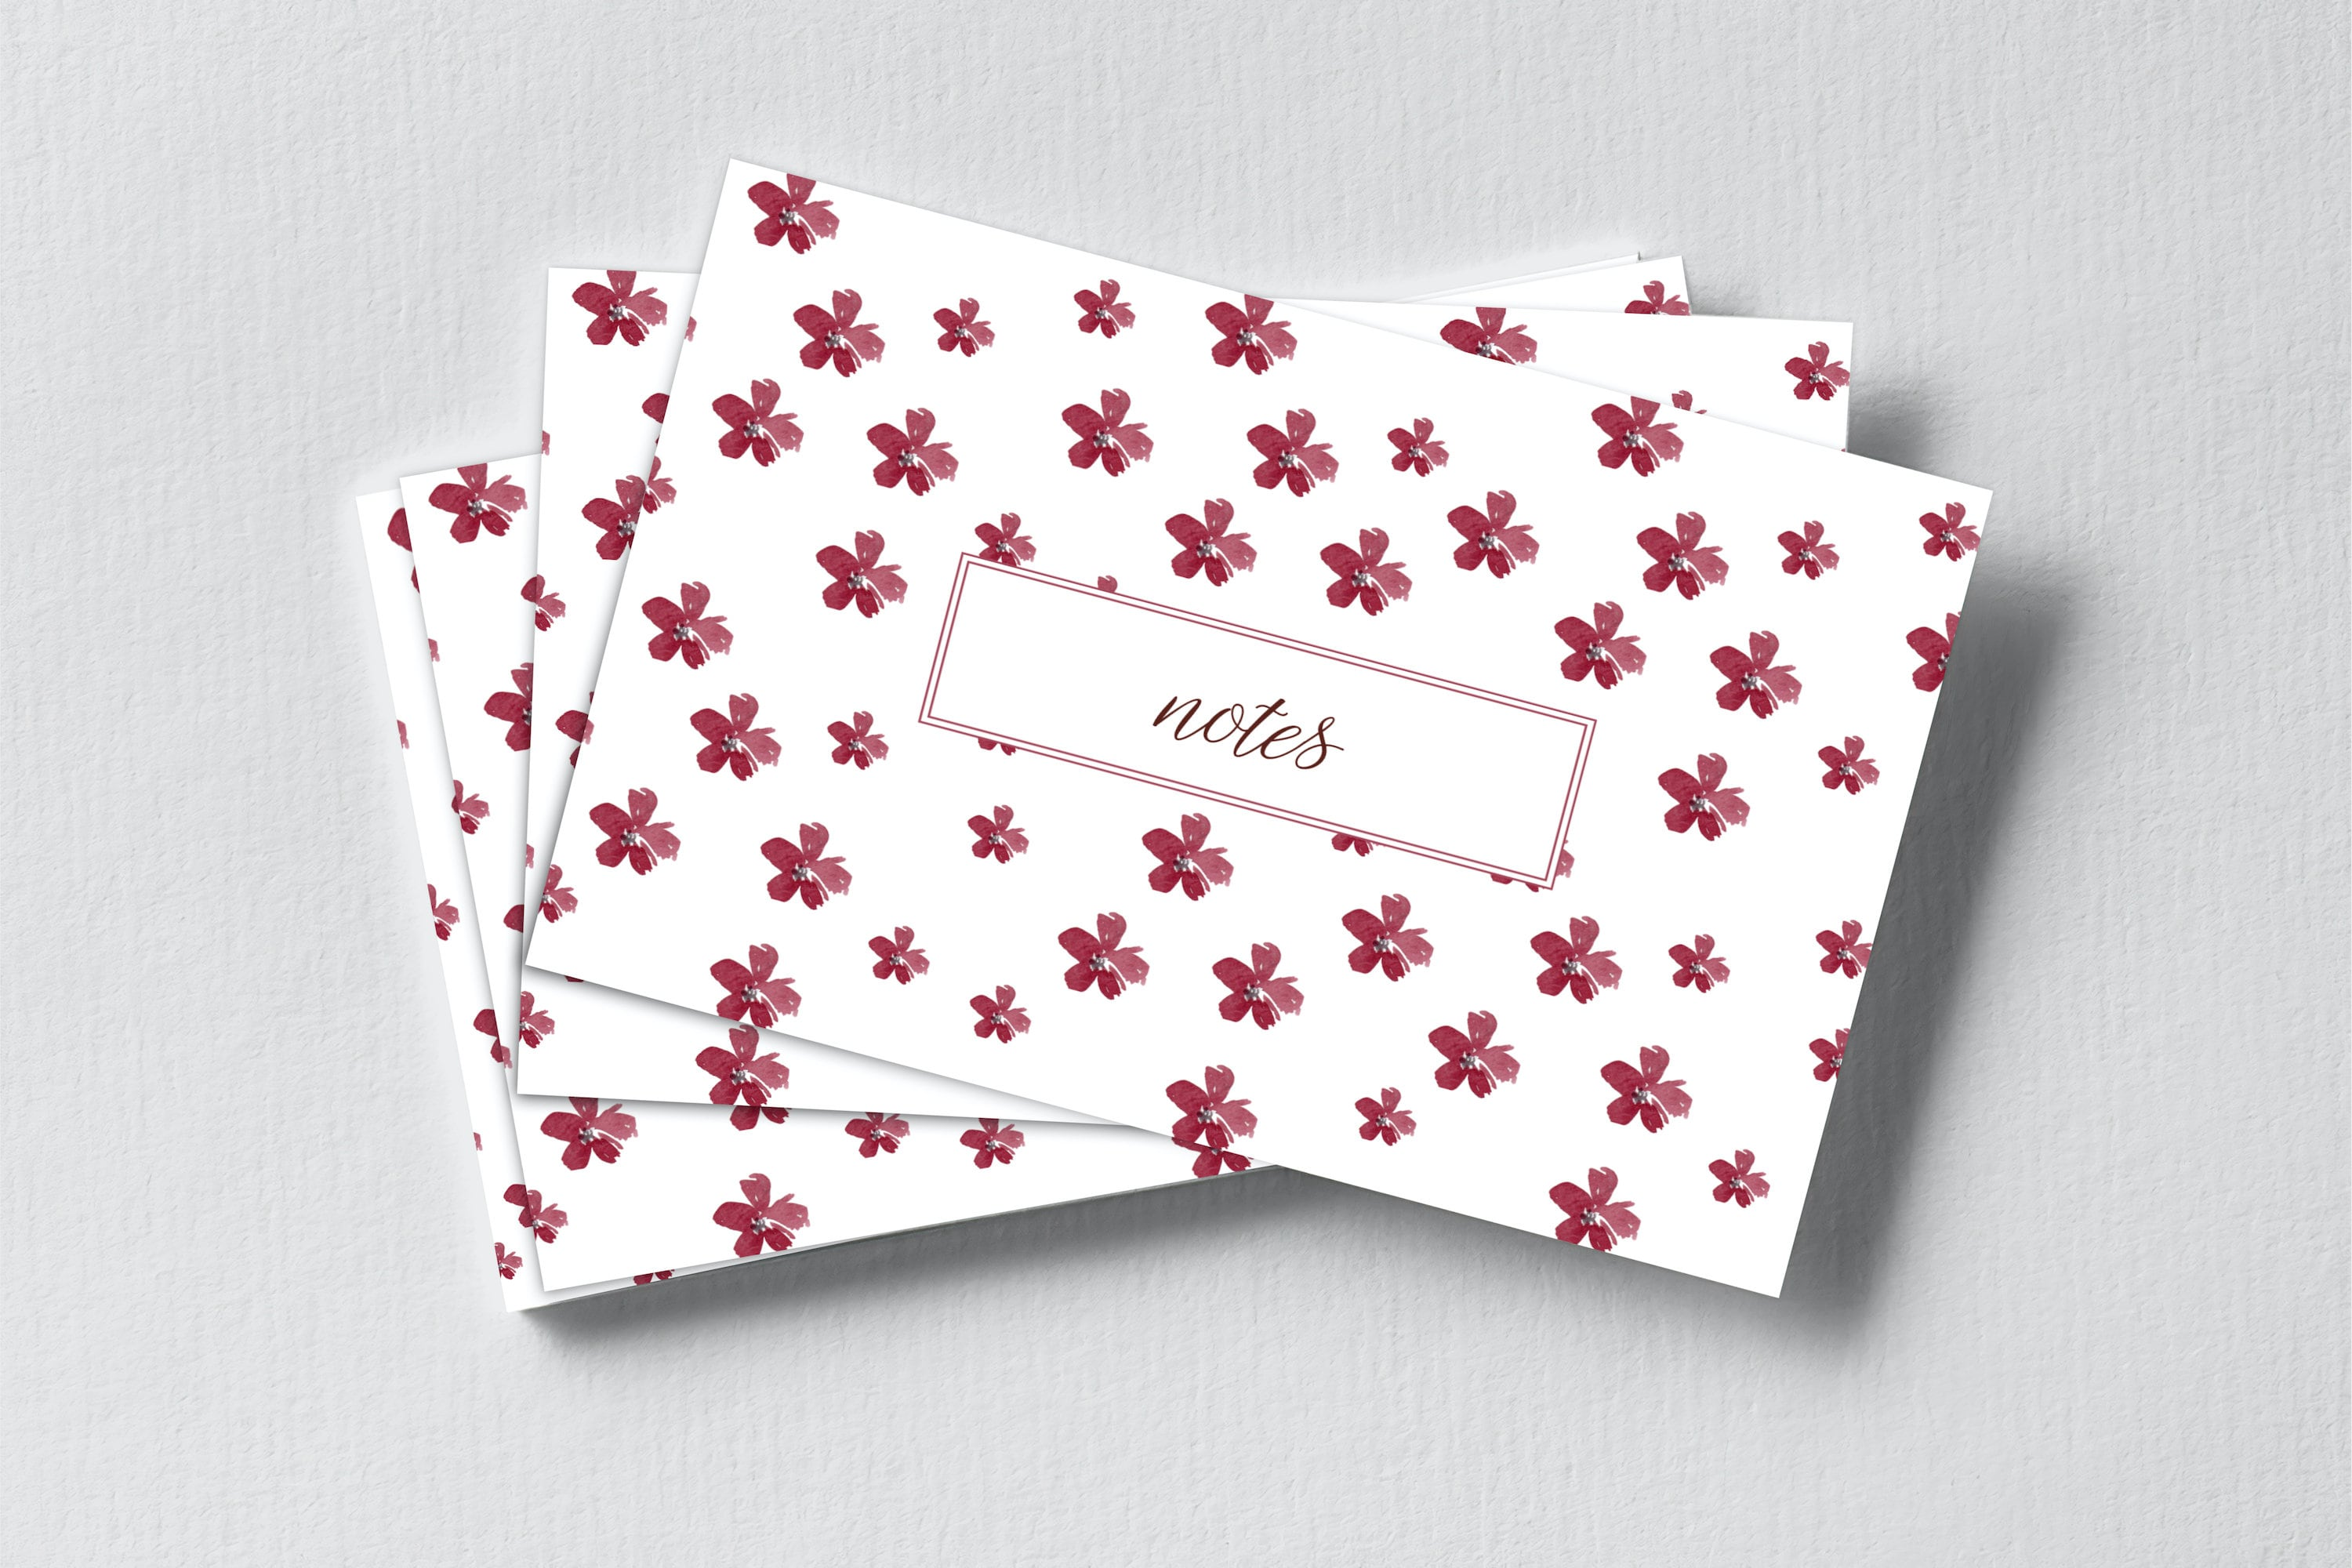 """A stack of white notecards with a pattern of larger red flowers. Each notecard says """"Notes"""" in a red outlined box in the centre"""